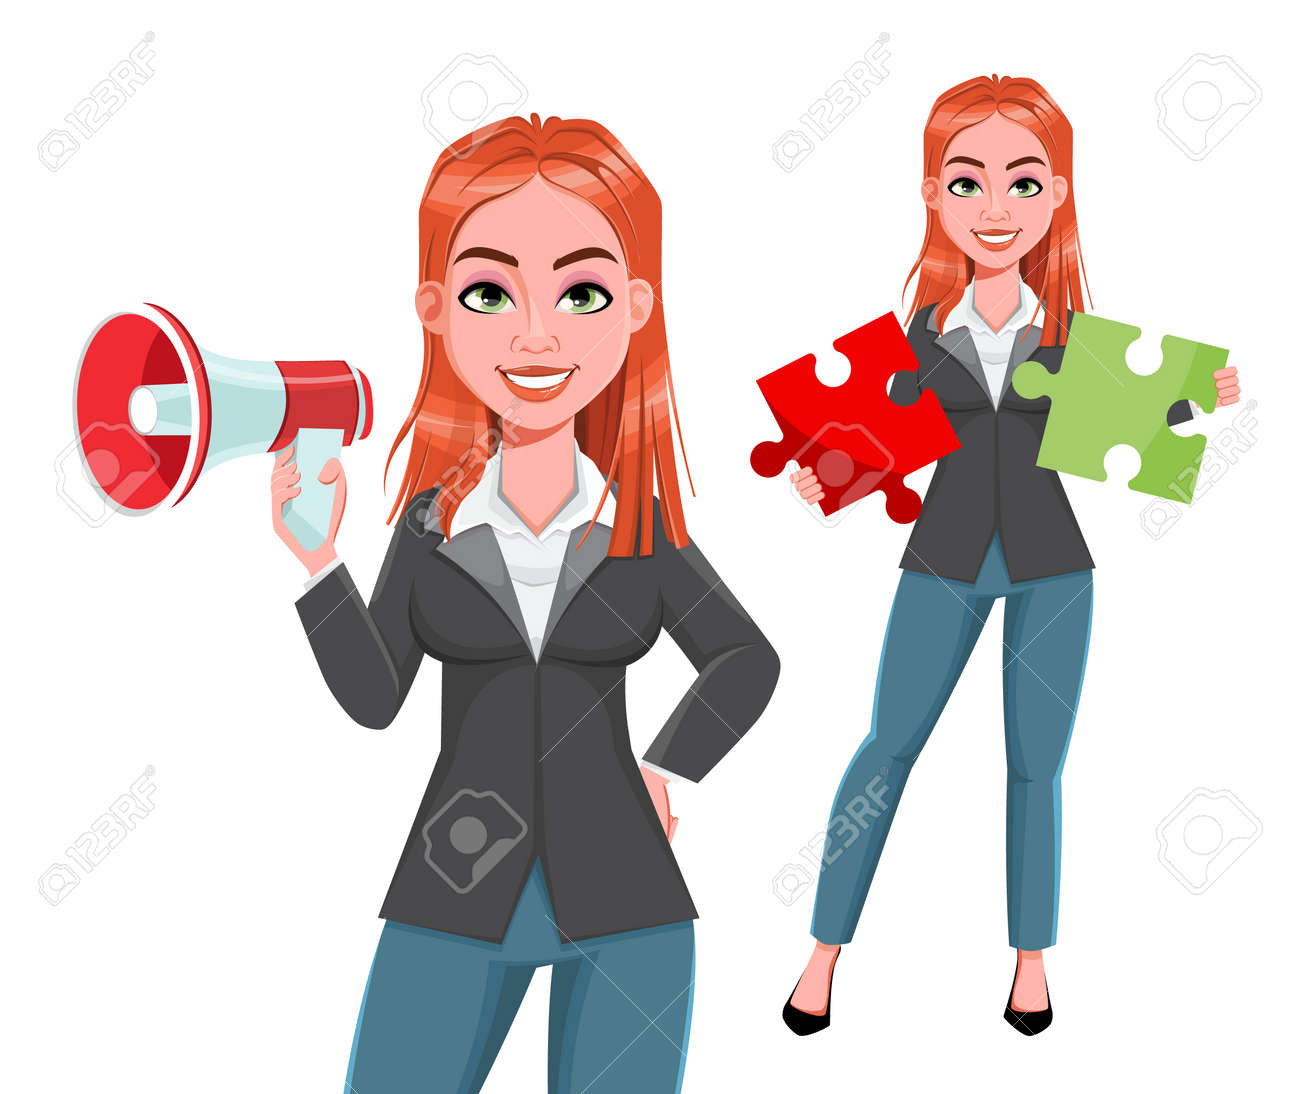 Beautiful business woman, set of two poses. Cheerful businesswoman cartoon character. Stock vector illustration on white background - 168196123